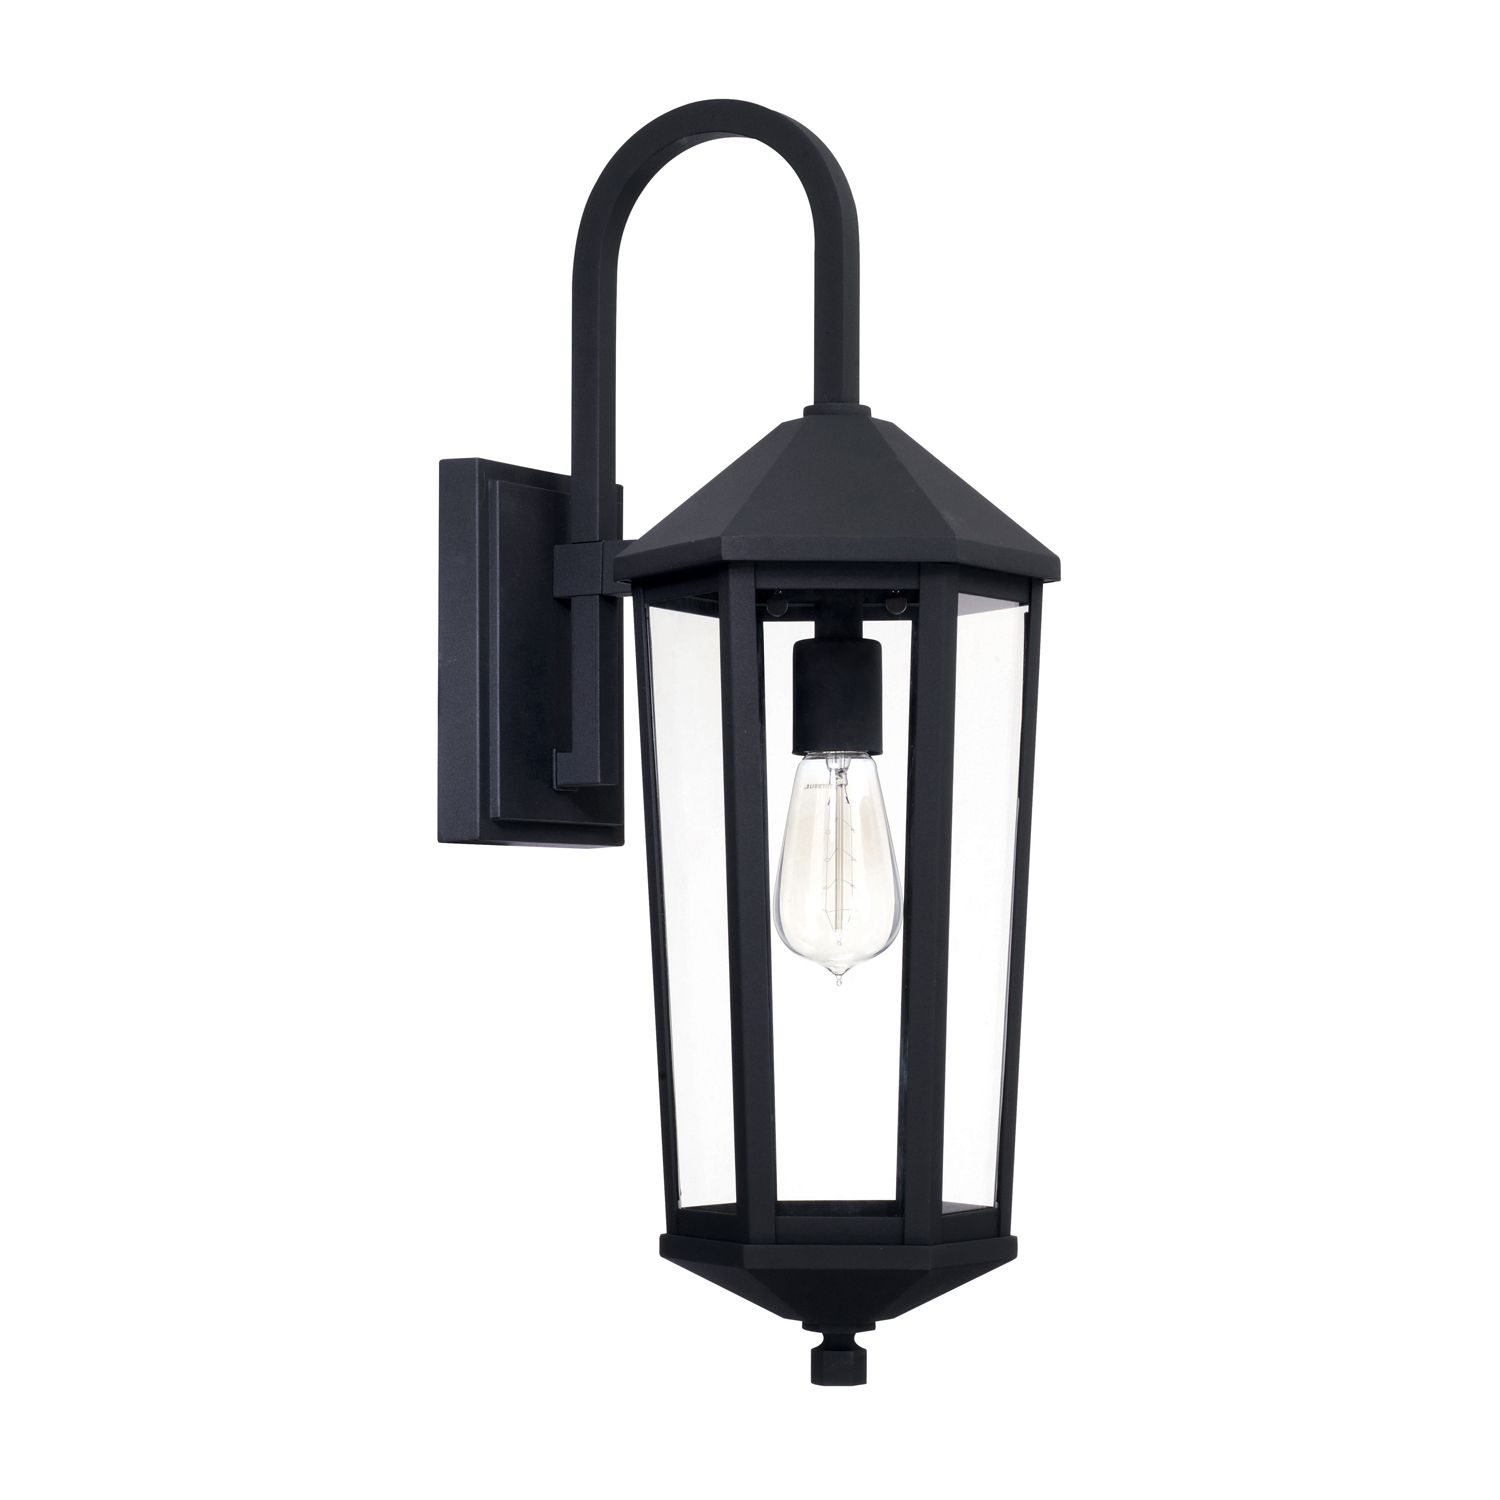 Ellsworth Outdoor Light Fixture from Capital Lighting